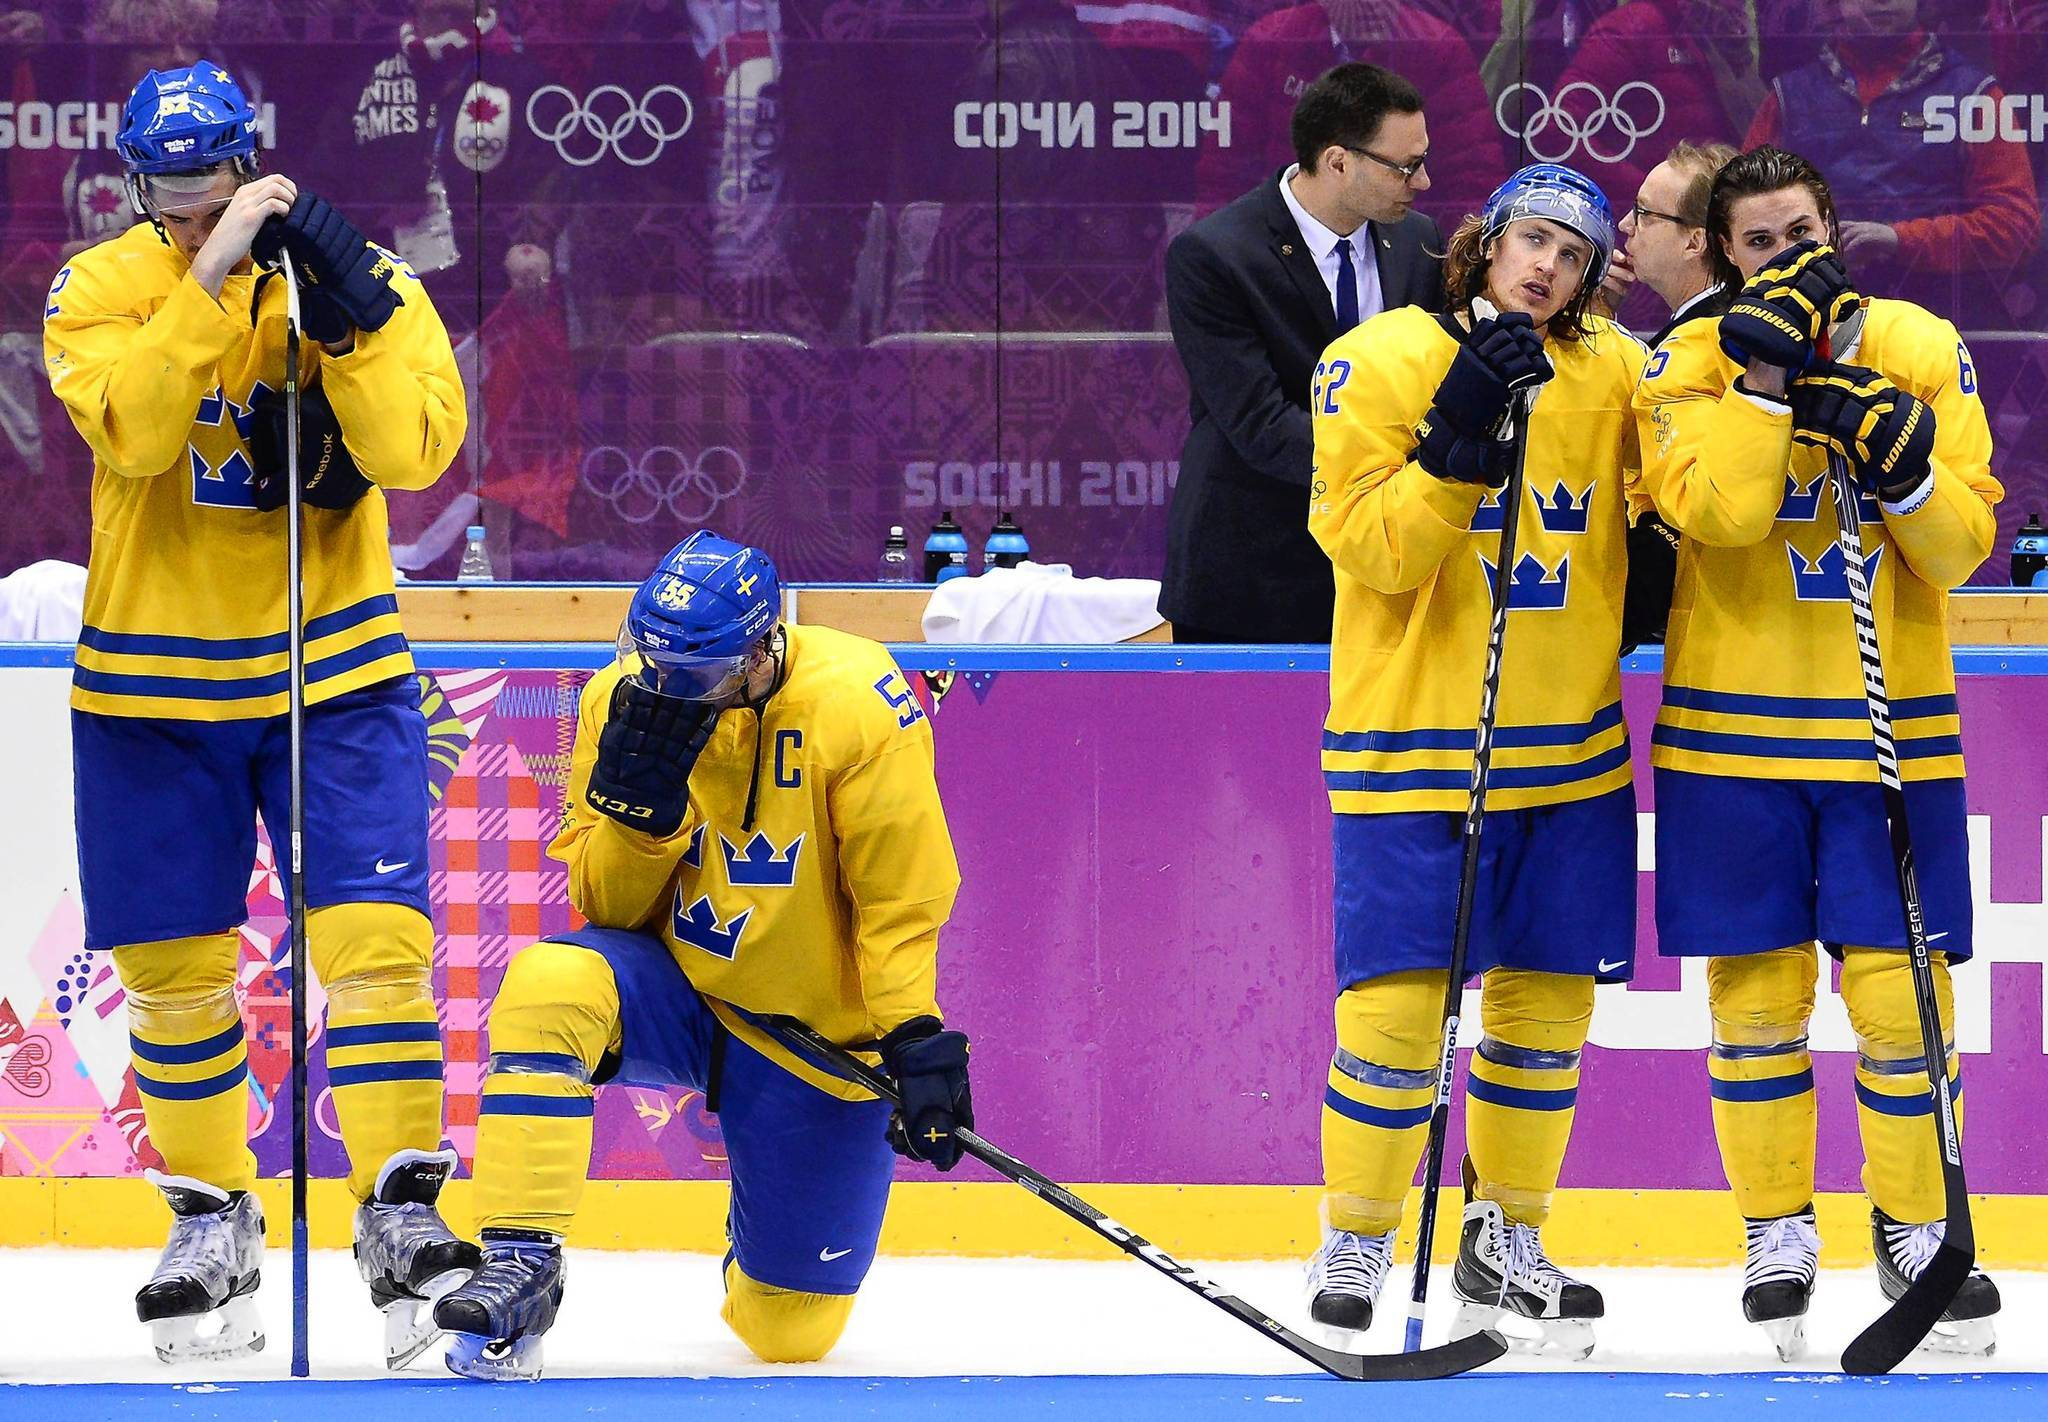 Photos: Canada vs. Sweden gold medal hockey - No gold medal for Sweden